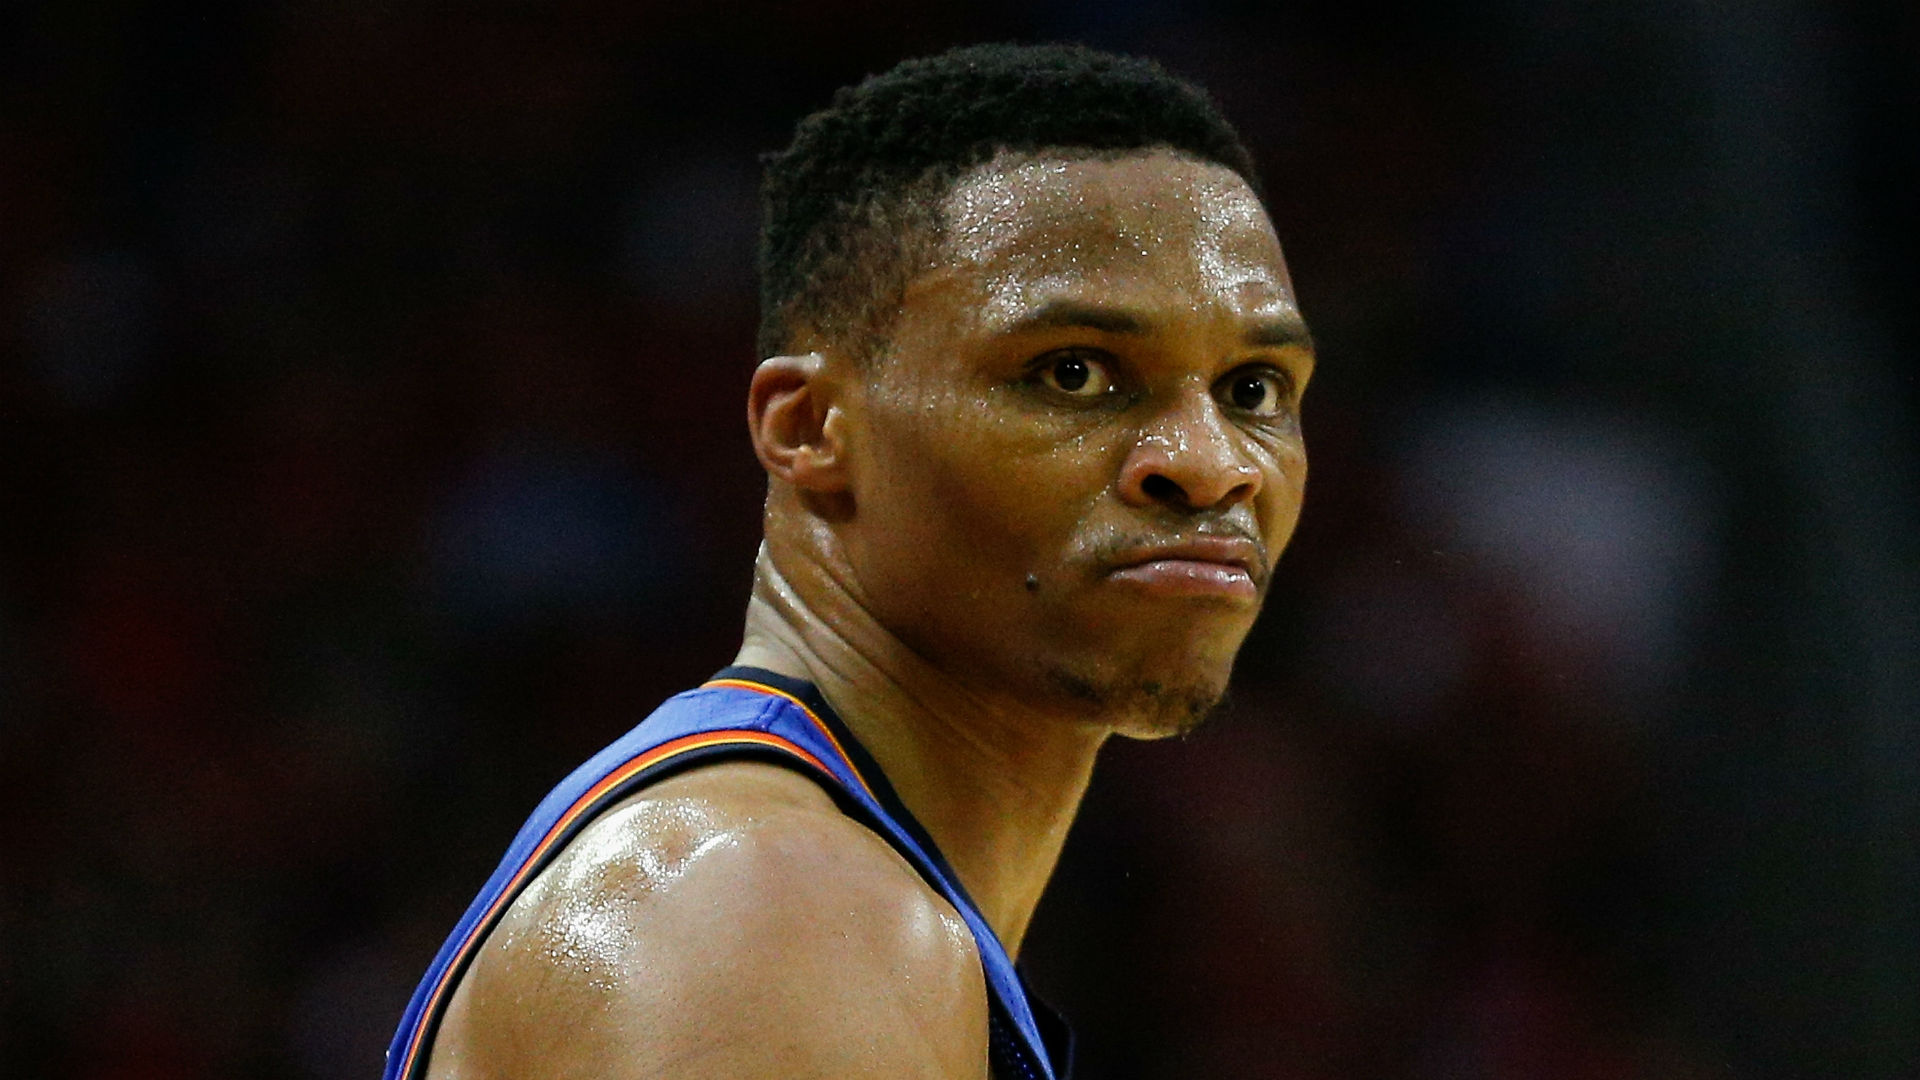 Russell Westbrook: 'I love adversity' as Thunder skid hits four